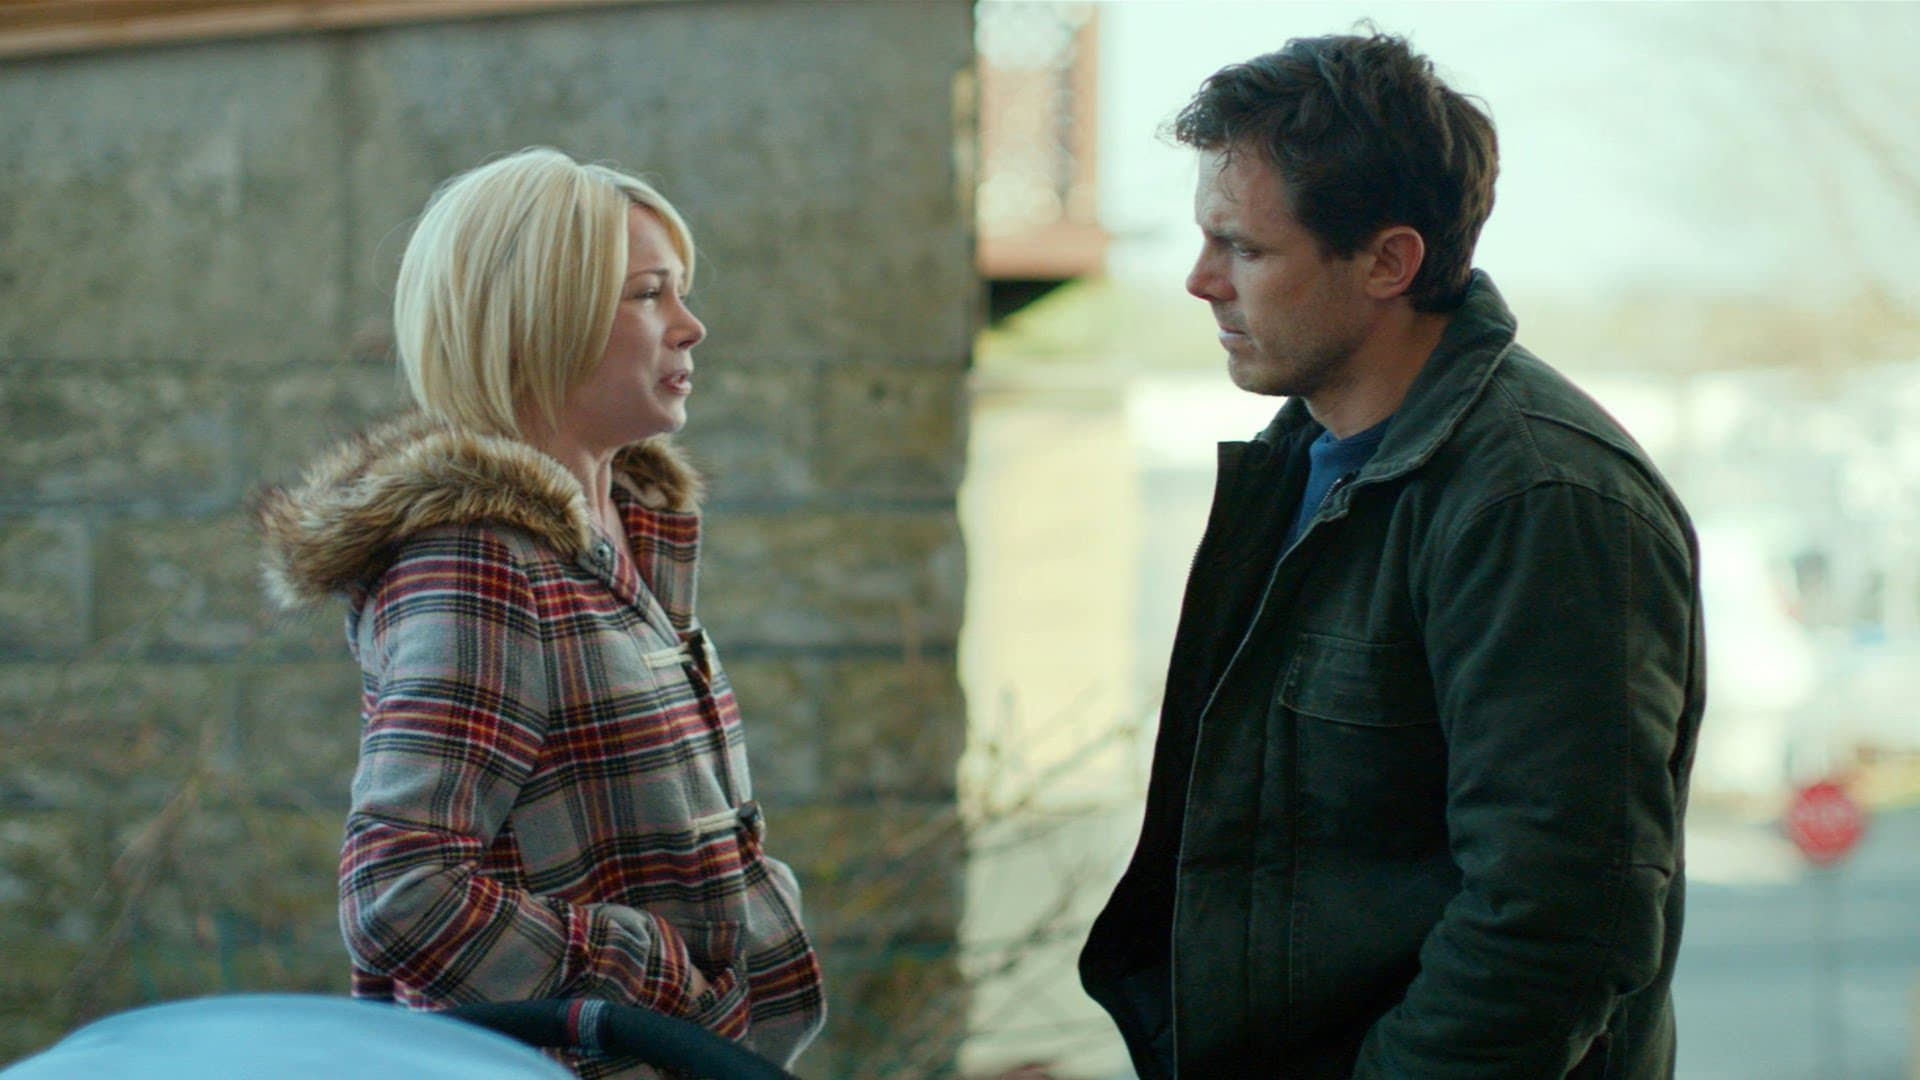 manchester-frente-al-mar-michelle-williams-casey-affleck